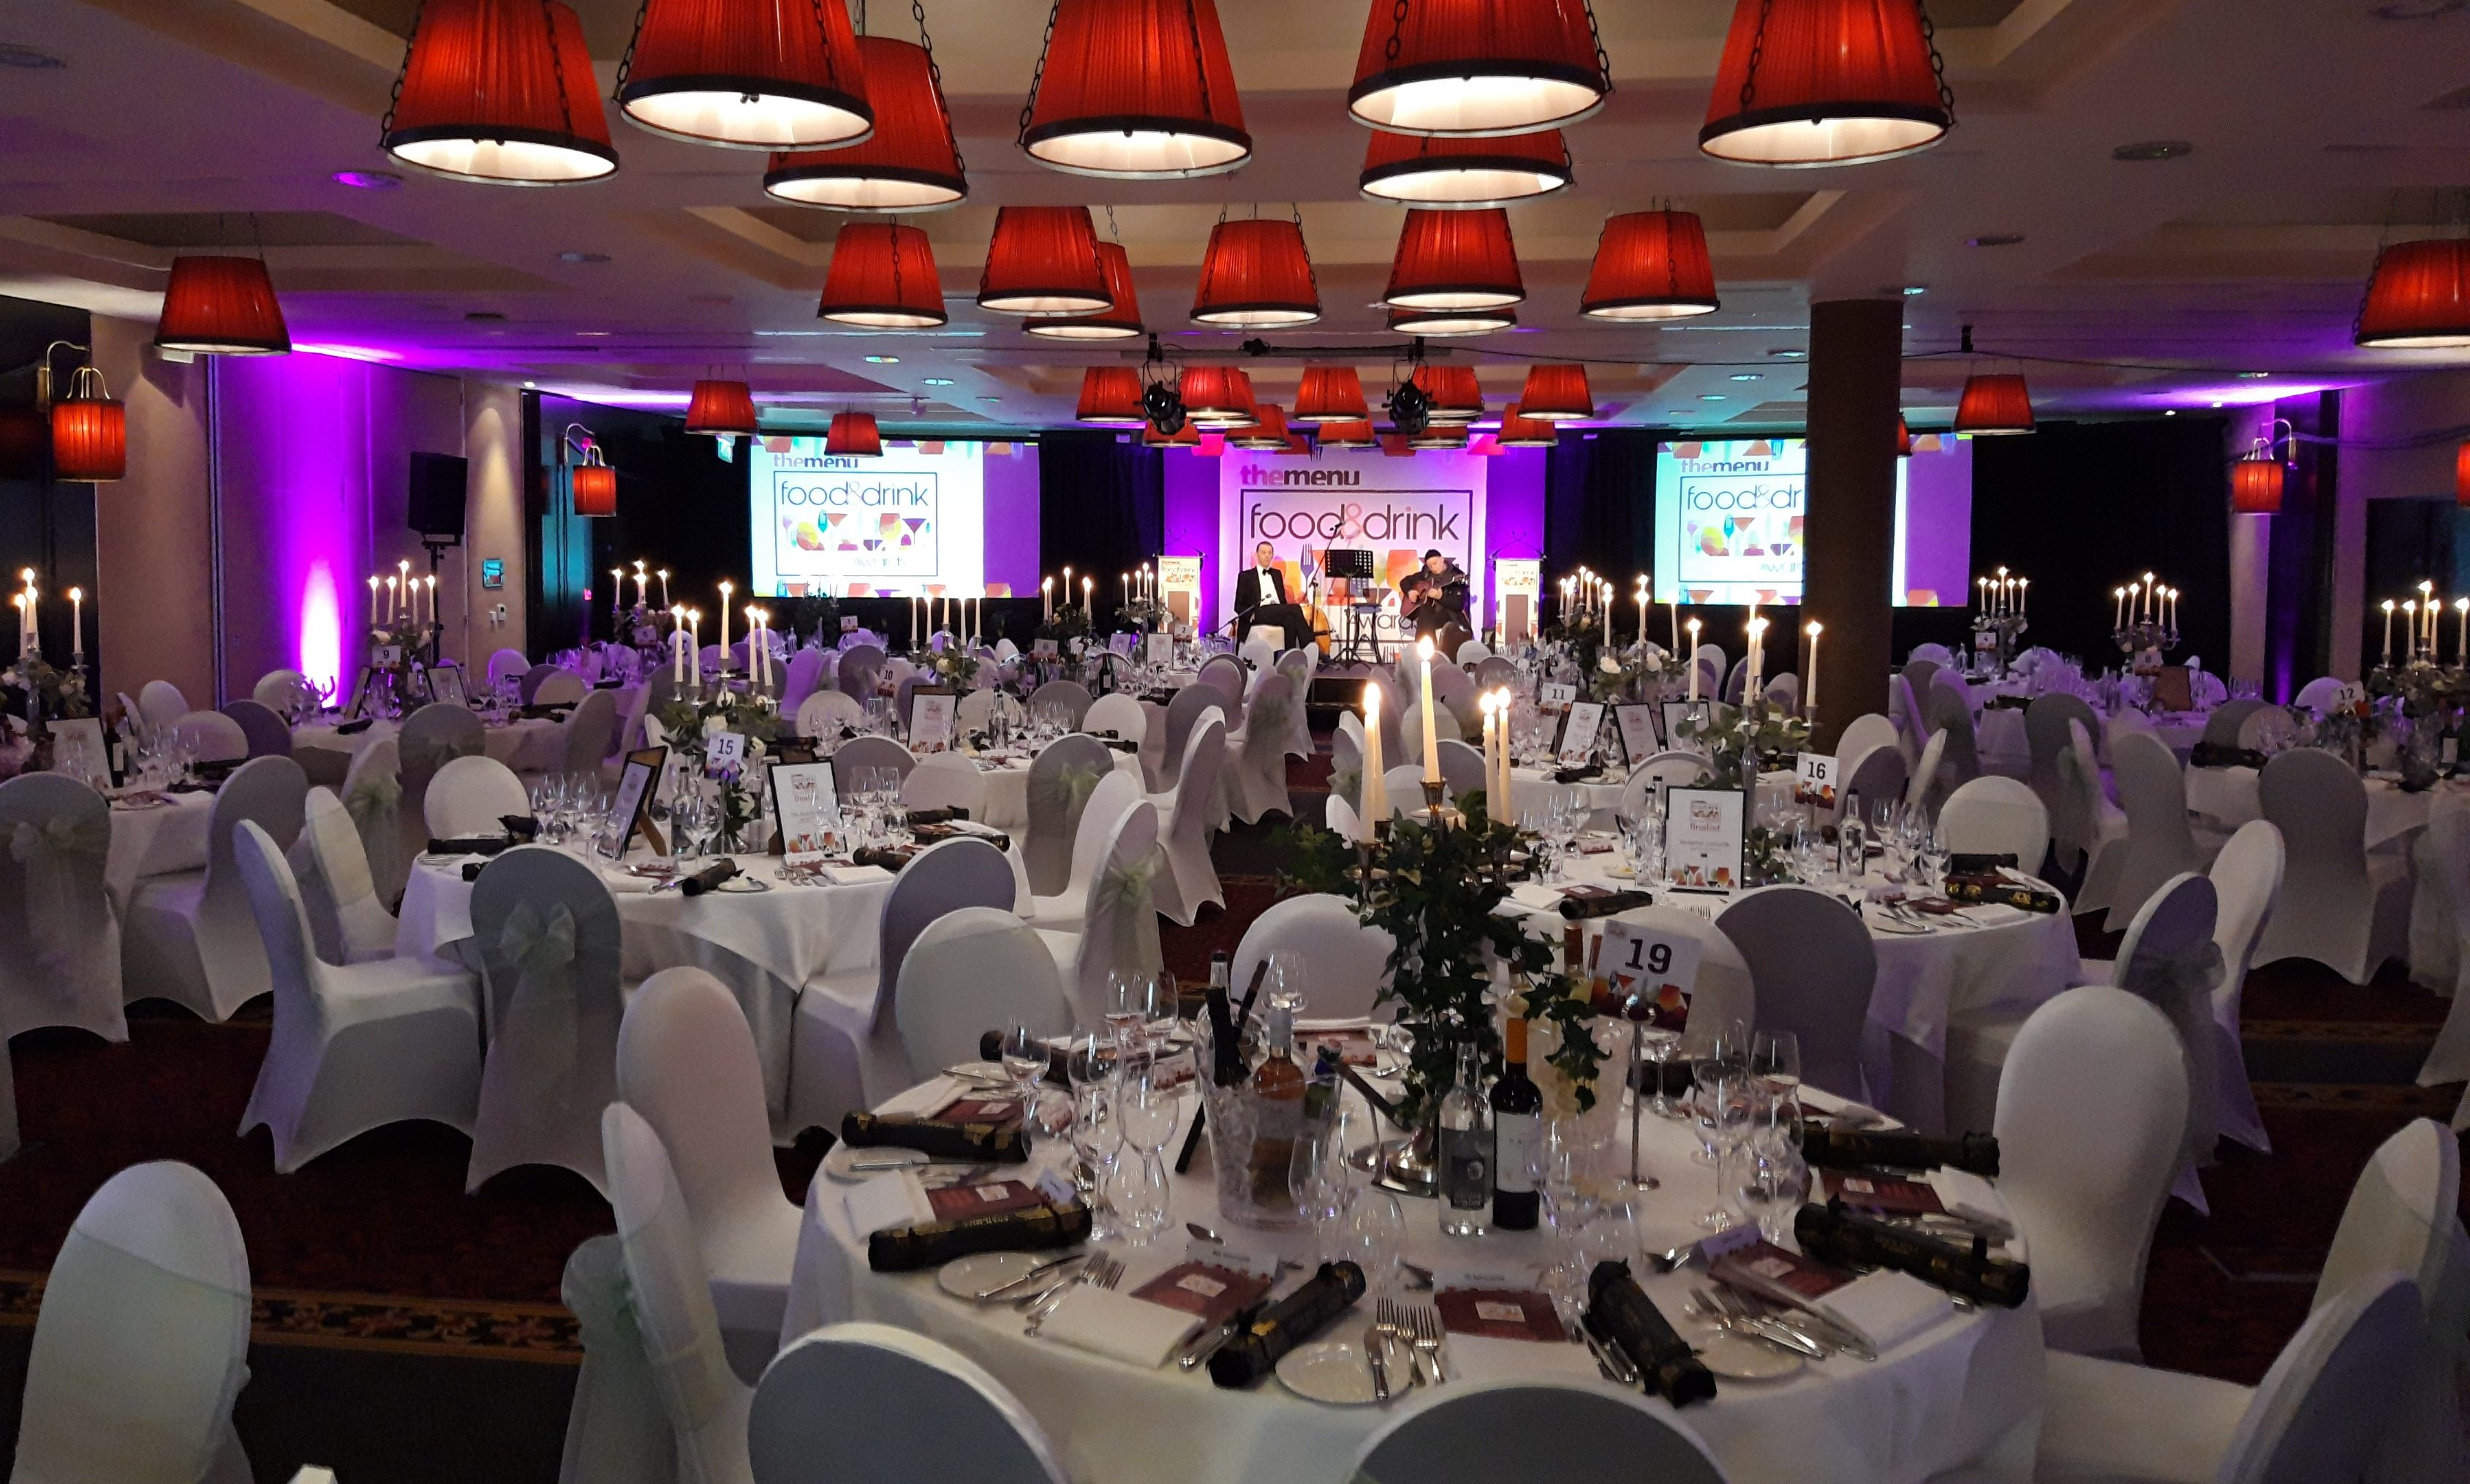 The stage is set for the 2019 The Menu Food and Drink Awards.